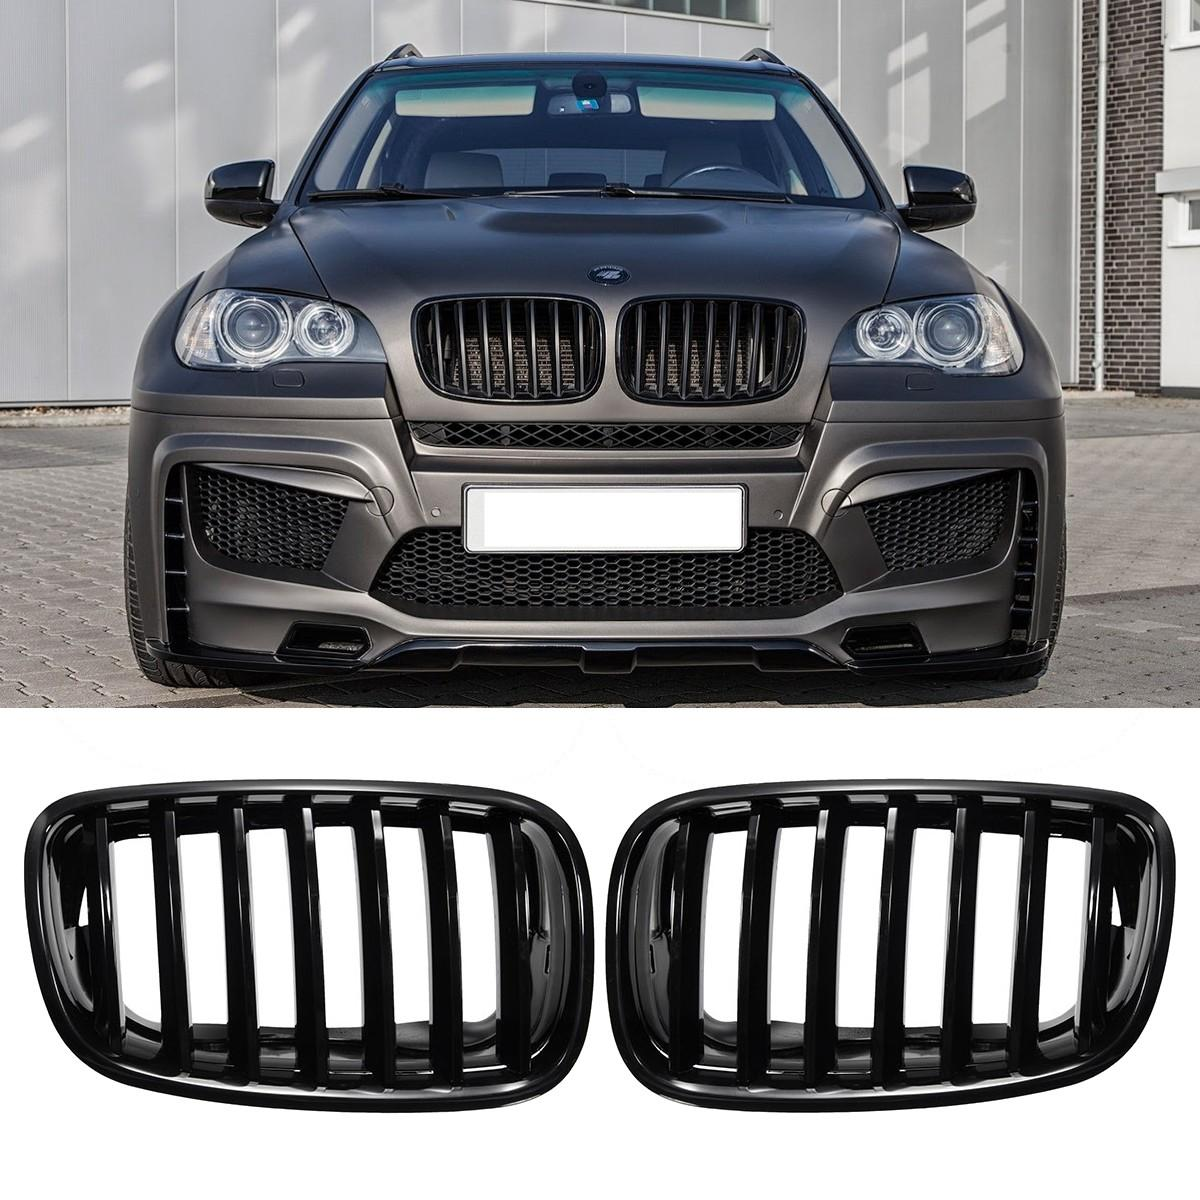 Pair Shiny Black Front Bumper Hood Kidney Sport Grills Grille for BMW E70 E71 2016 new a pair front grilles left and right double line grille gloss black front grills for bmw 3 series e46 2002 2004 4 door